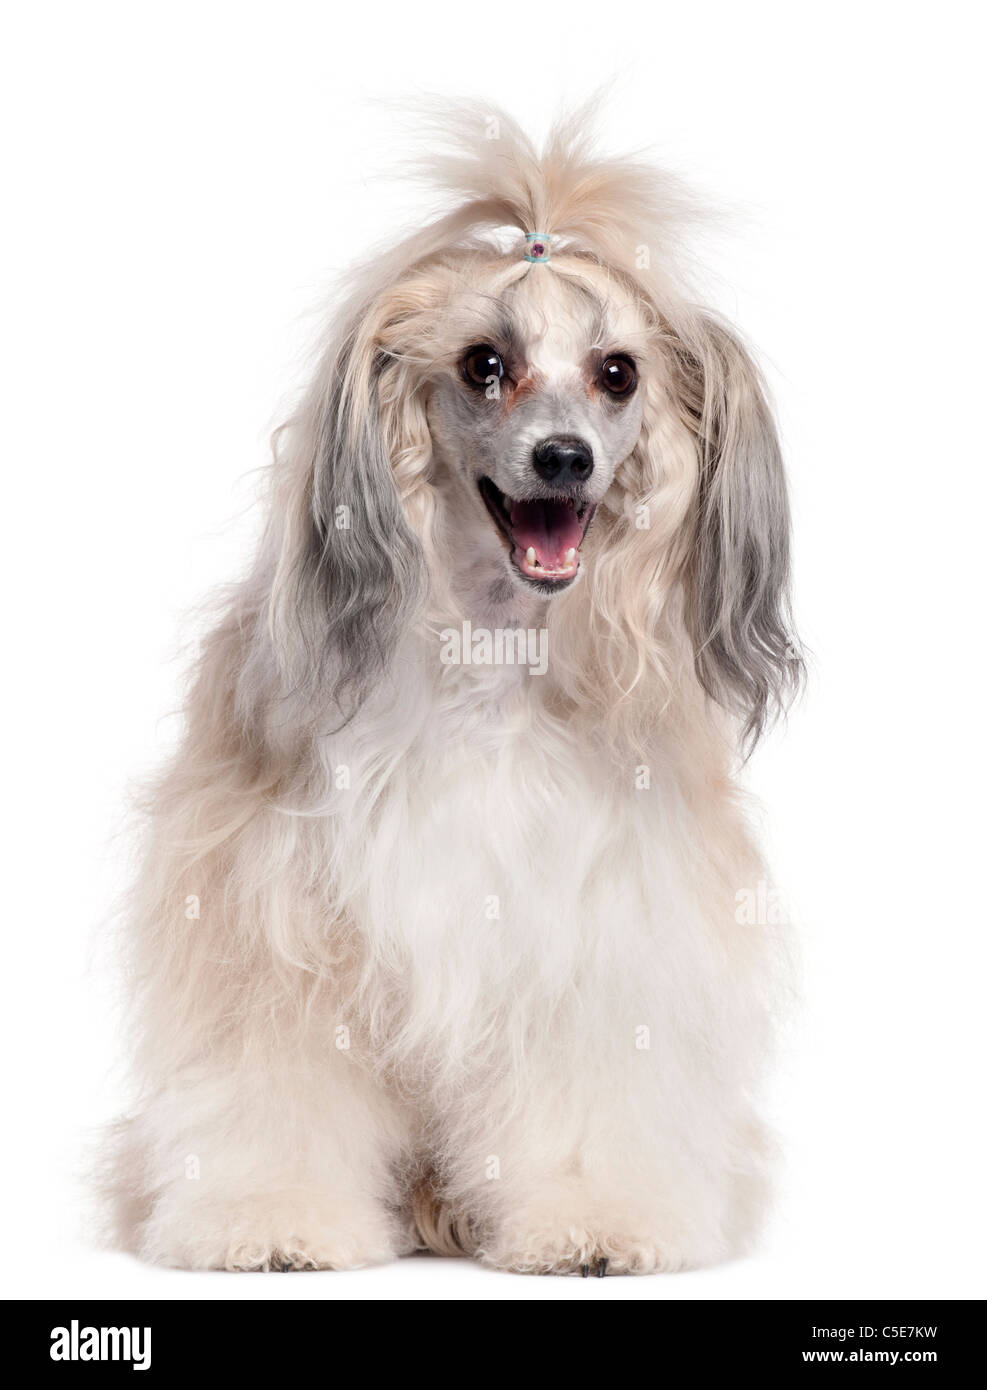 Chinese Crested Dog, 3 years old, in front of white background - Stock Image